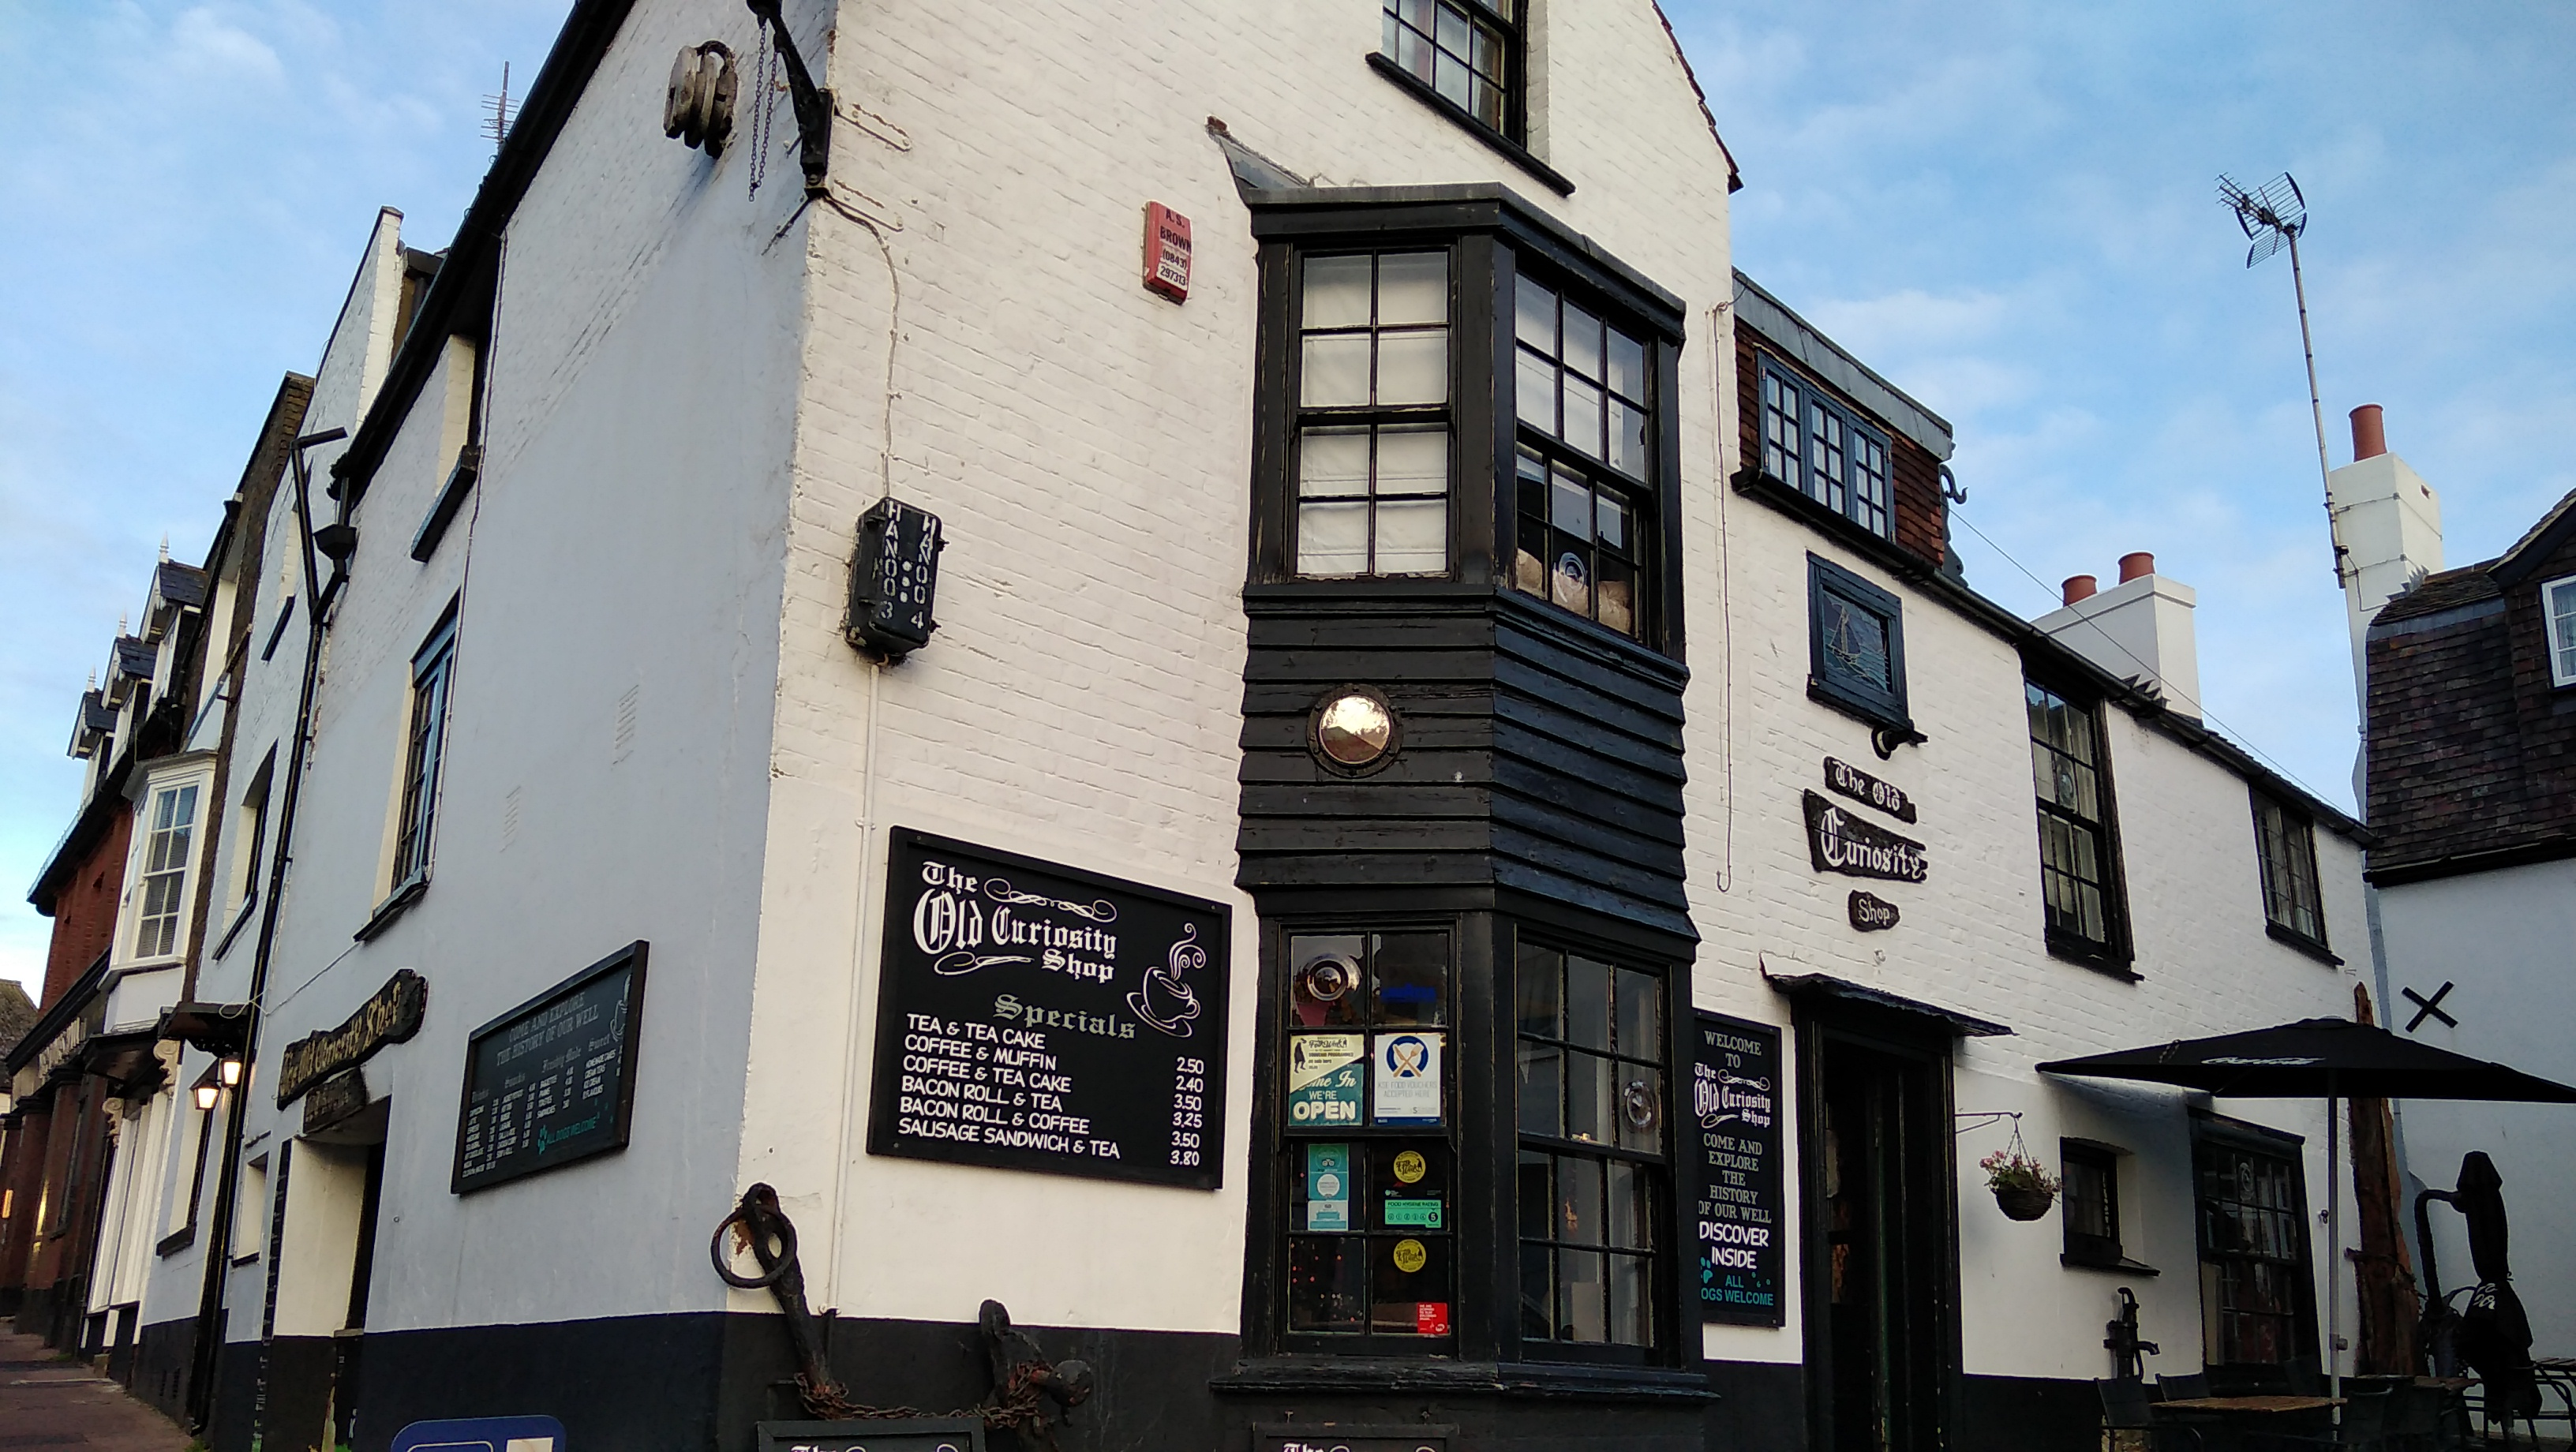 the old curiosity shop broadstairs, walk 1000 miles, viking bay broadstairs, walks in england, new years day swim